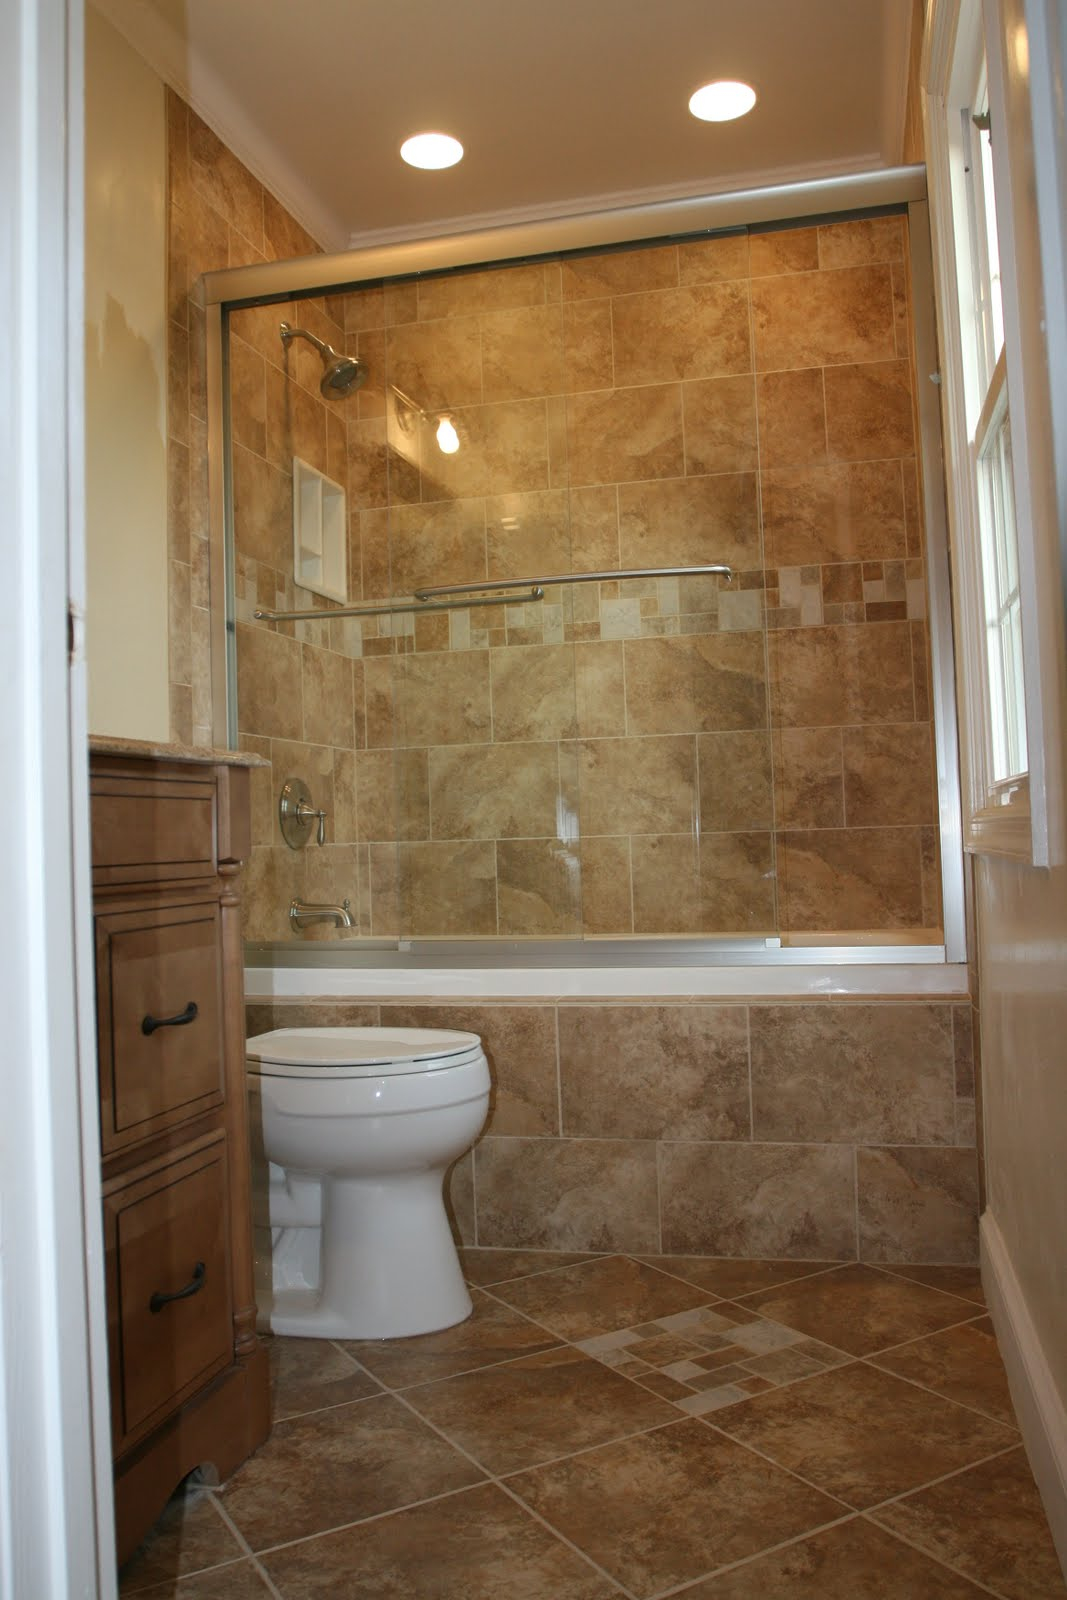 Bathroom Remodeling Design Ideas Tile Shower Niches: bathroom tiles ideas for small bathrooms